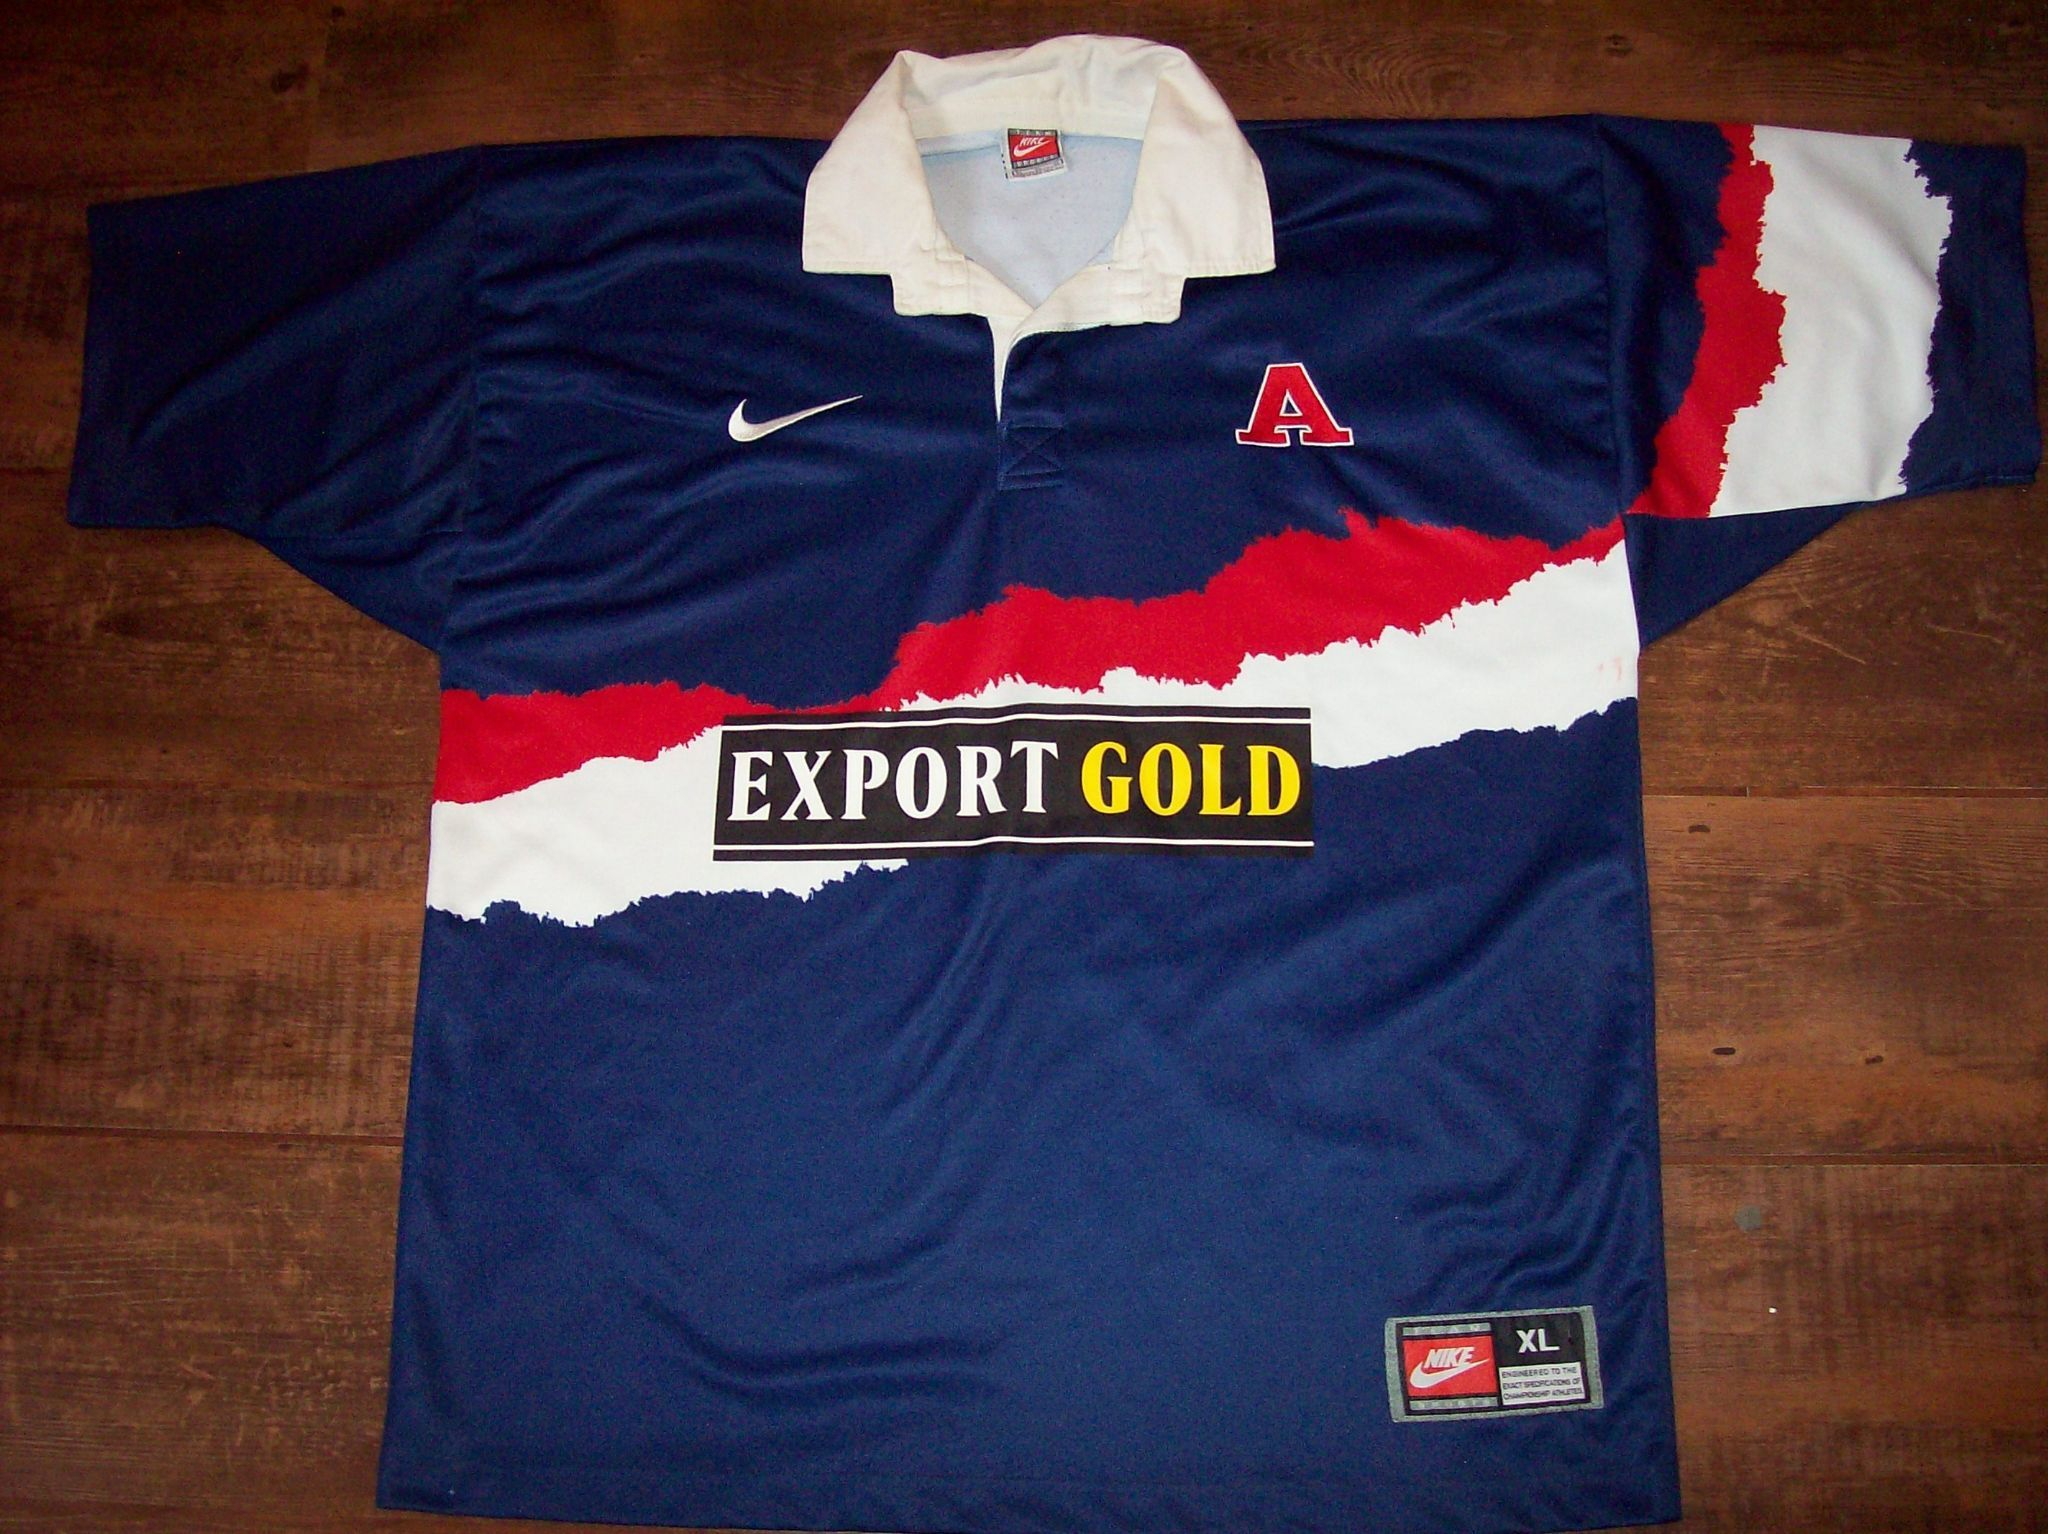 Classic Rugby Shirts 1997 Auckland Vintage Old Jerseys Classic Rugby Shirts Rugby Union Rugby Shirt